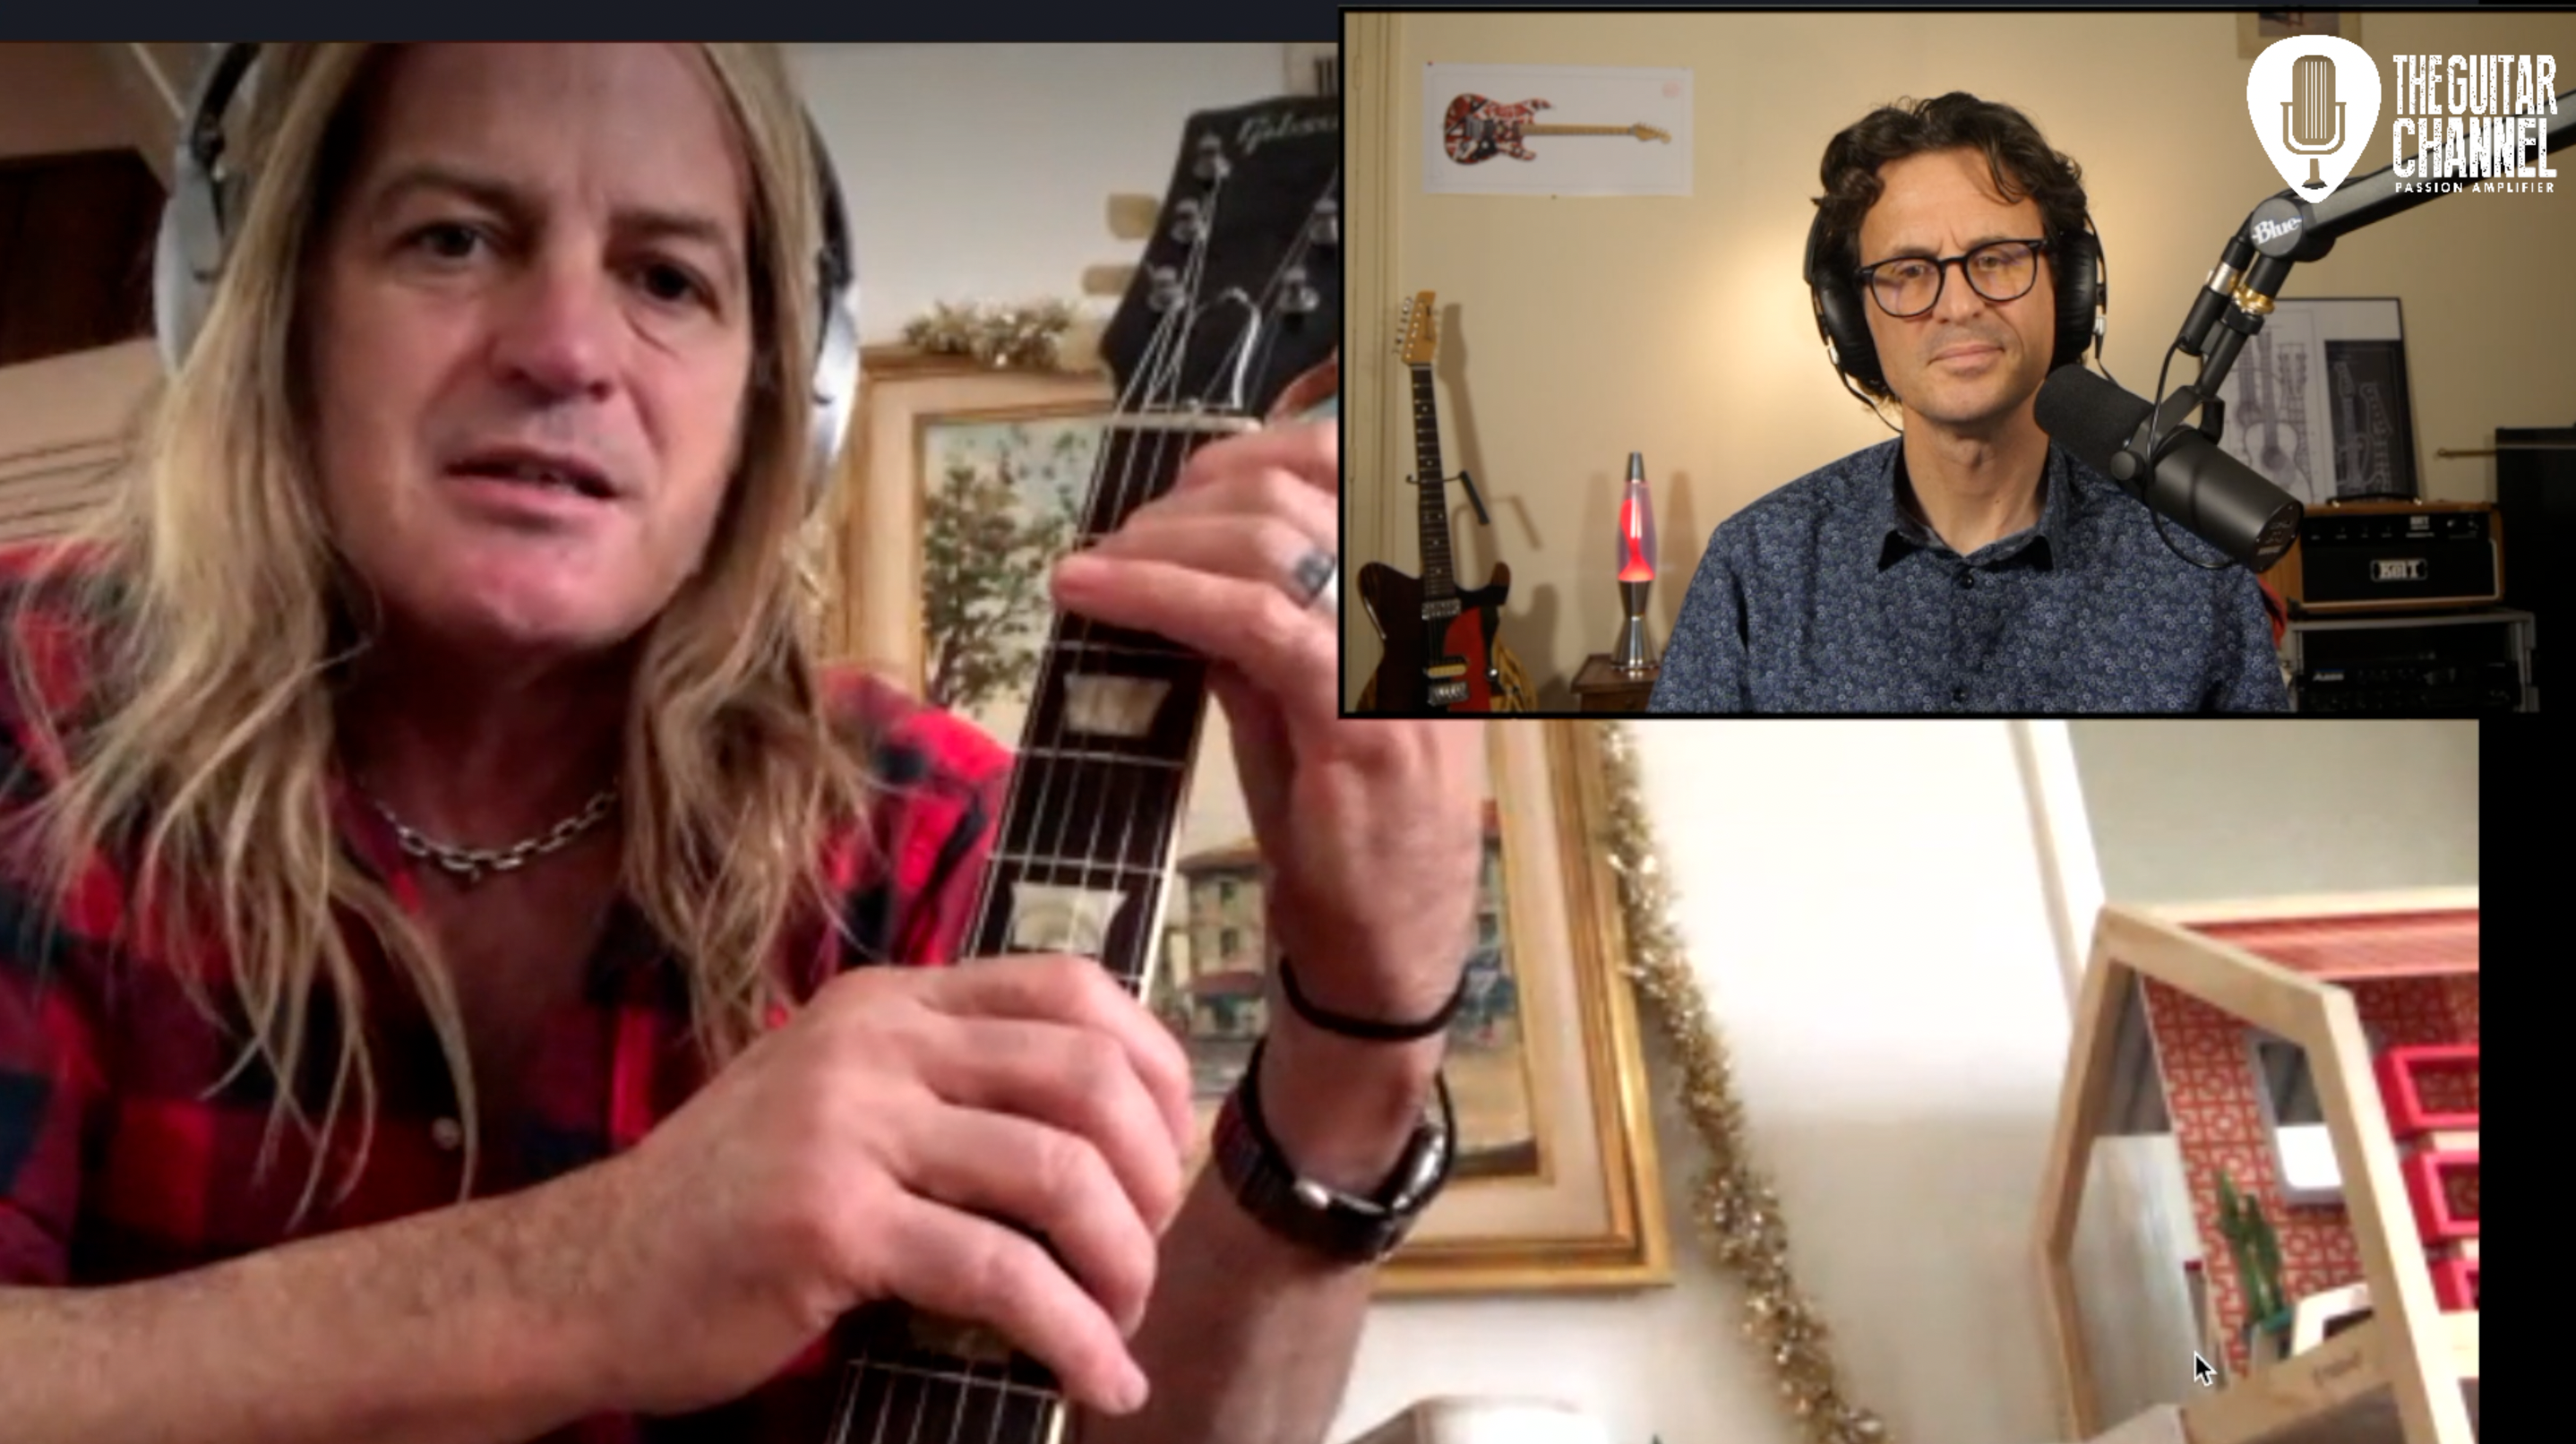 Doug Aldrich interview about the album from The Dead Daisies with Glenn Hughes